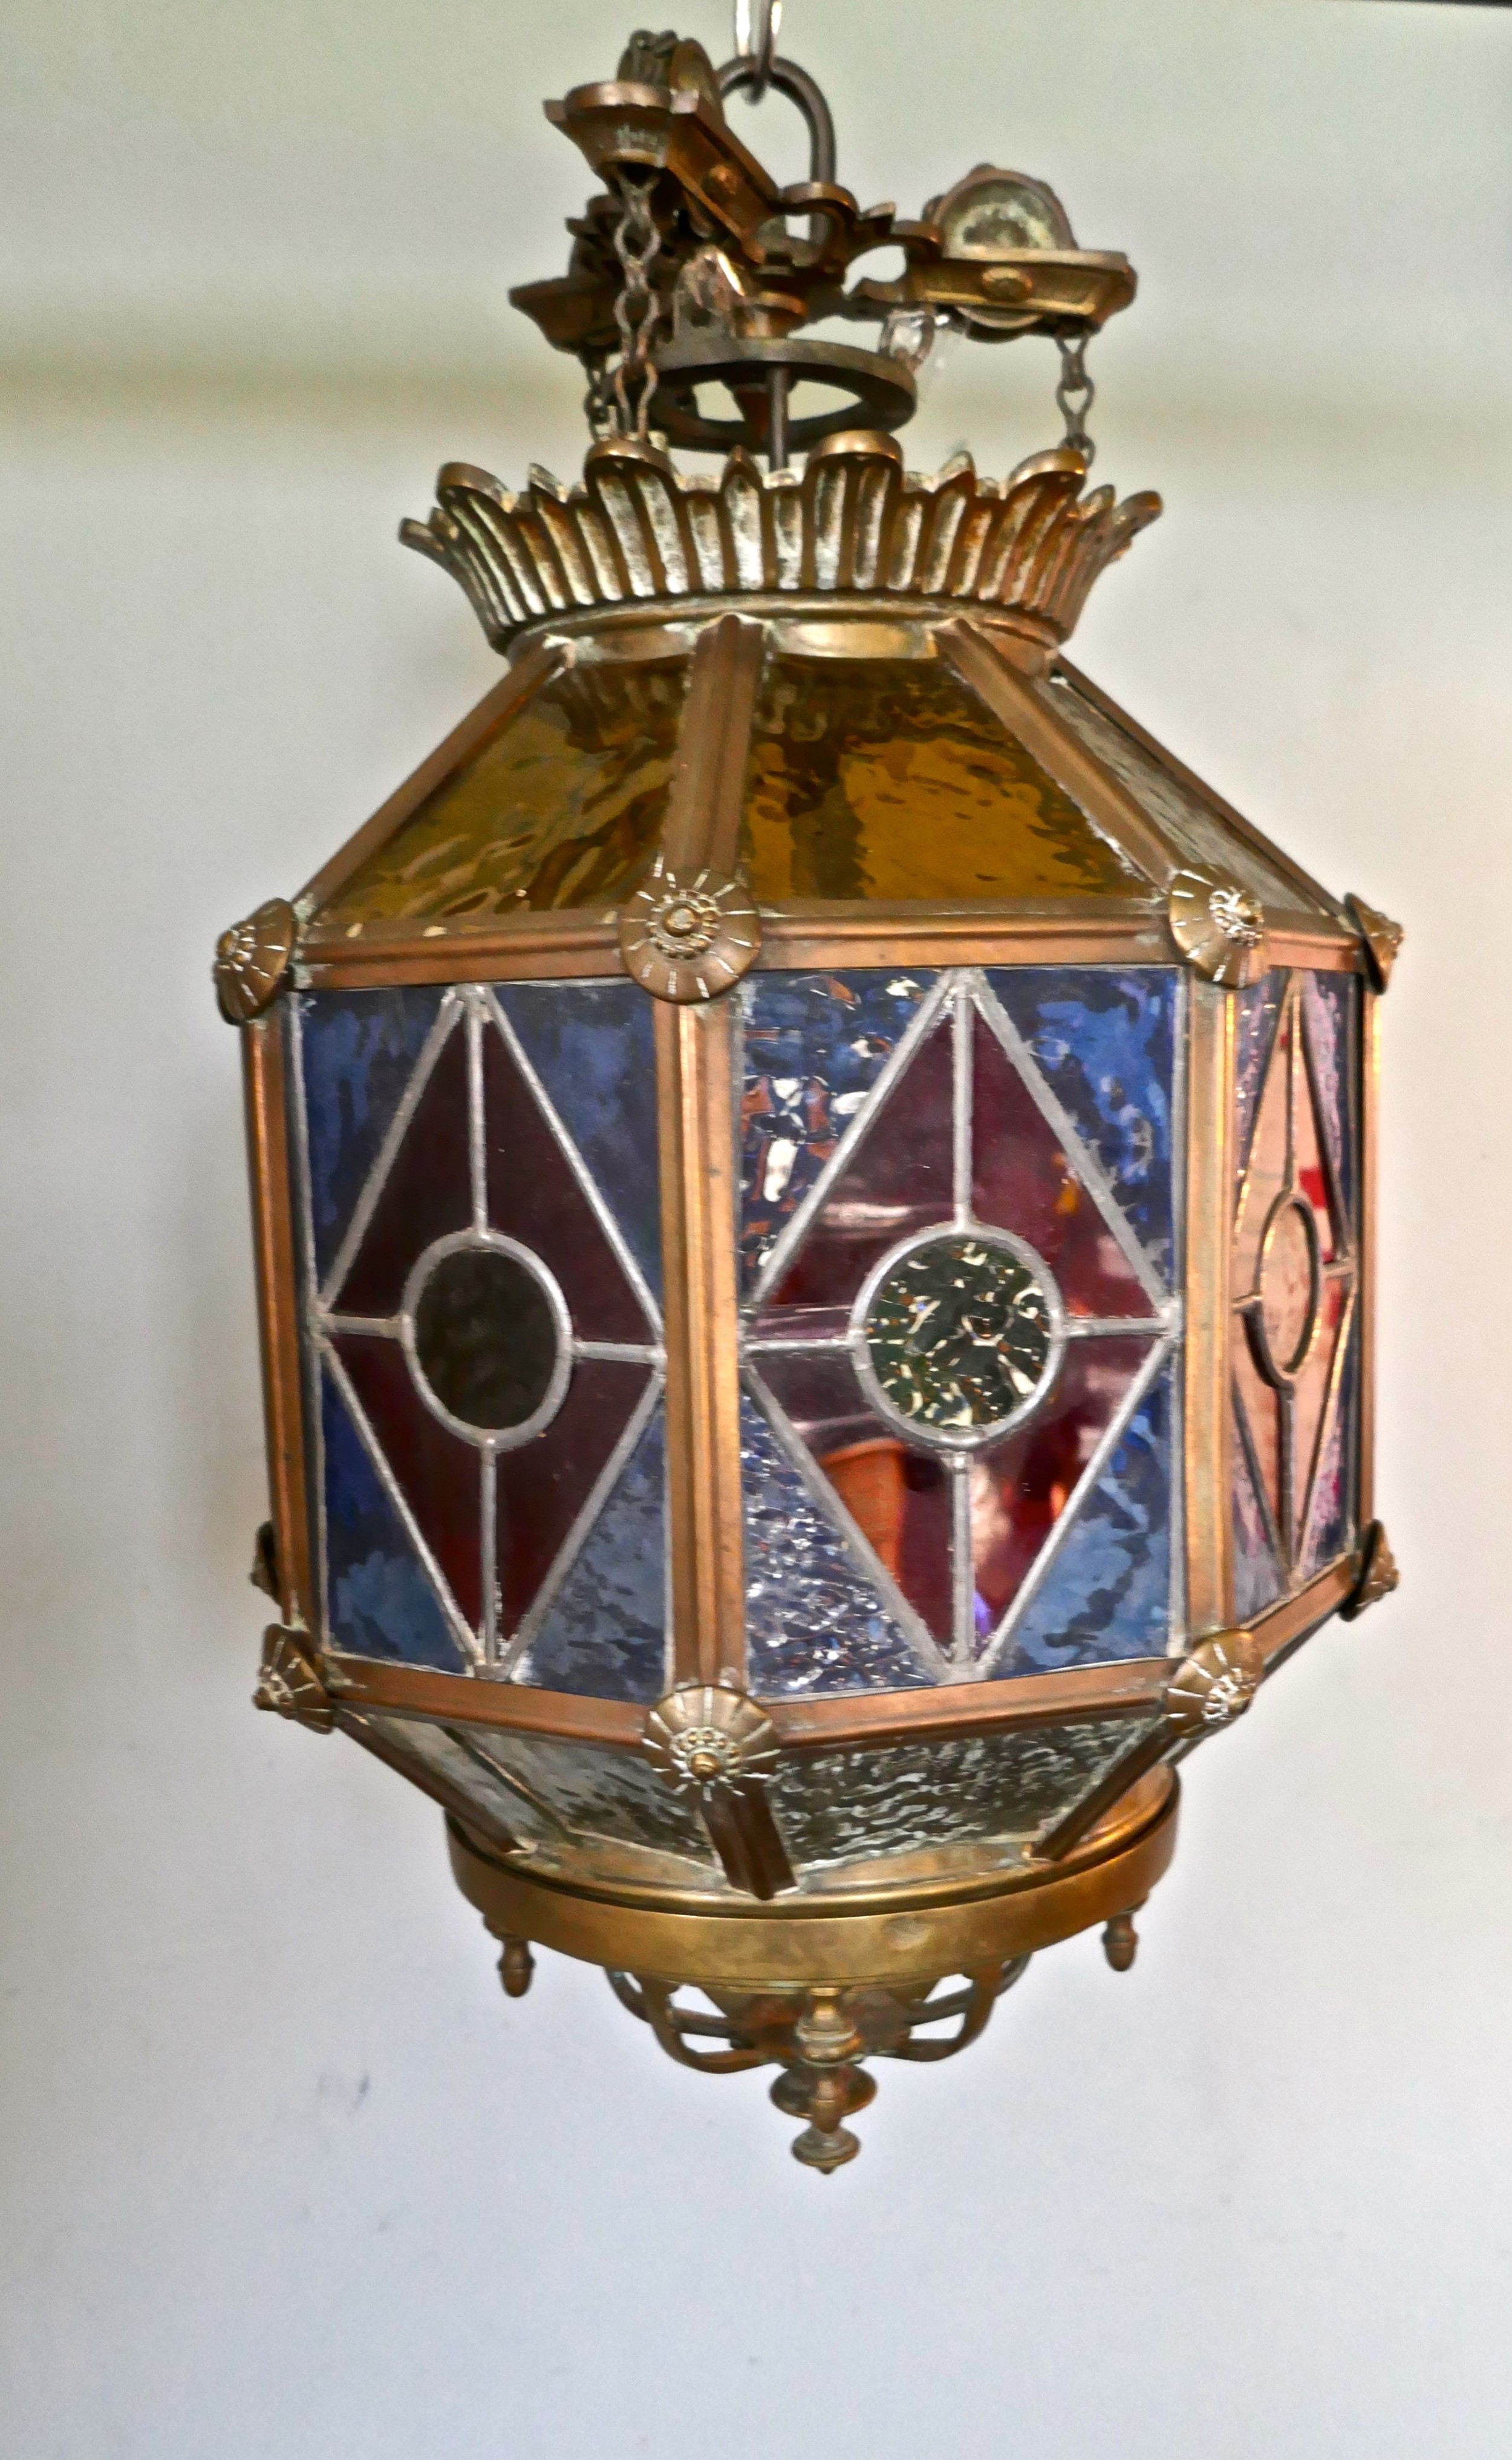 19th century stained glass and brass hall lantern lamp shade